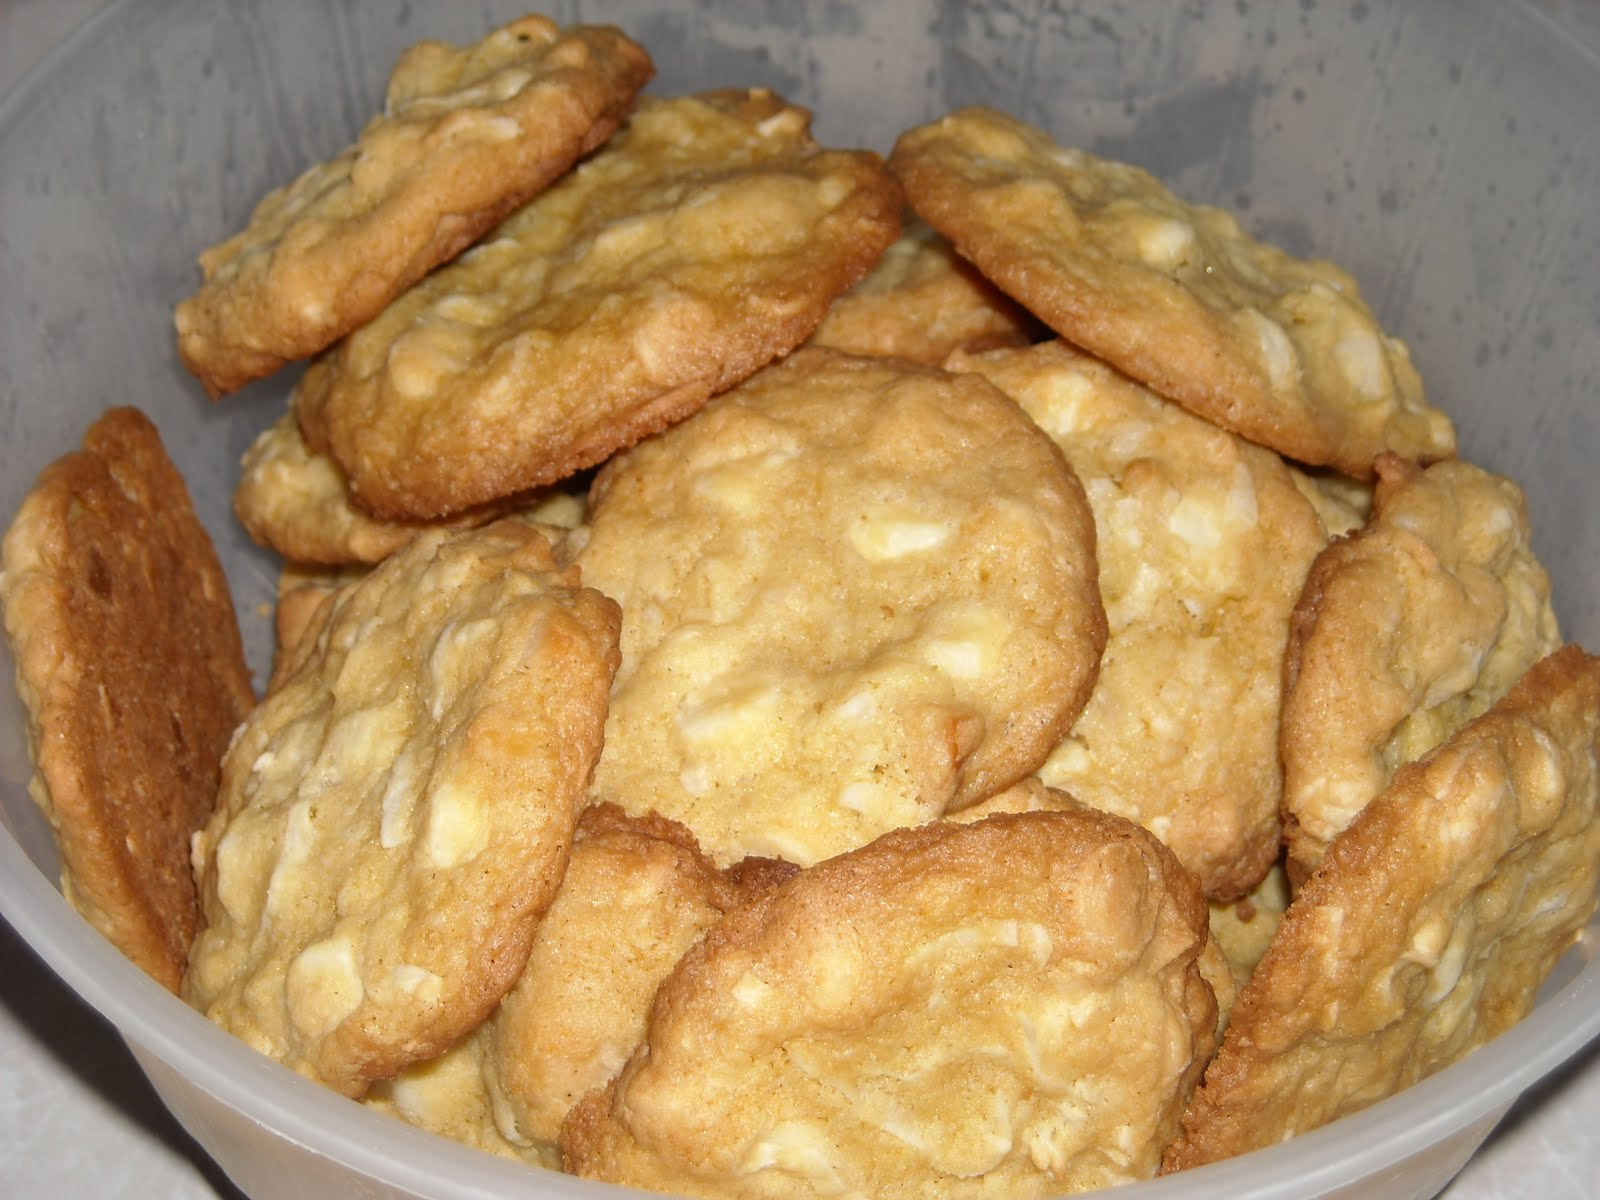 Toll House White Chocolate Chip Island Cookies